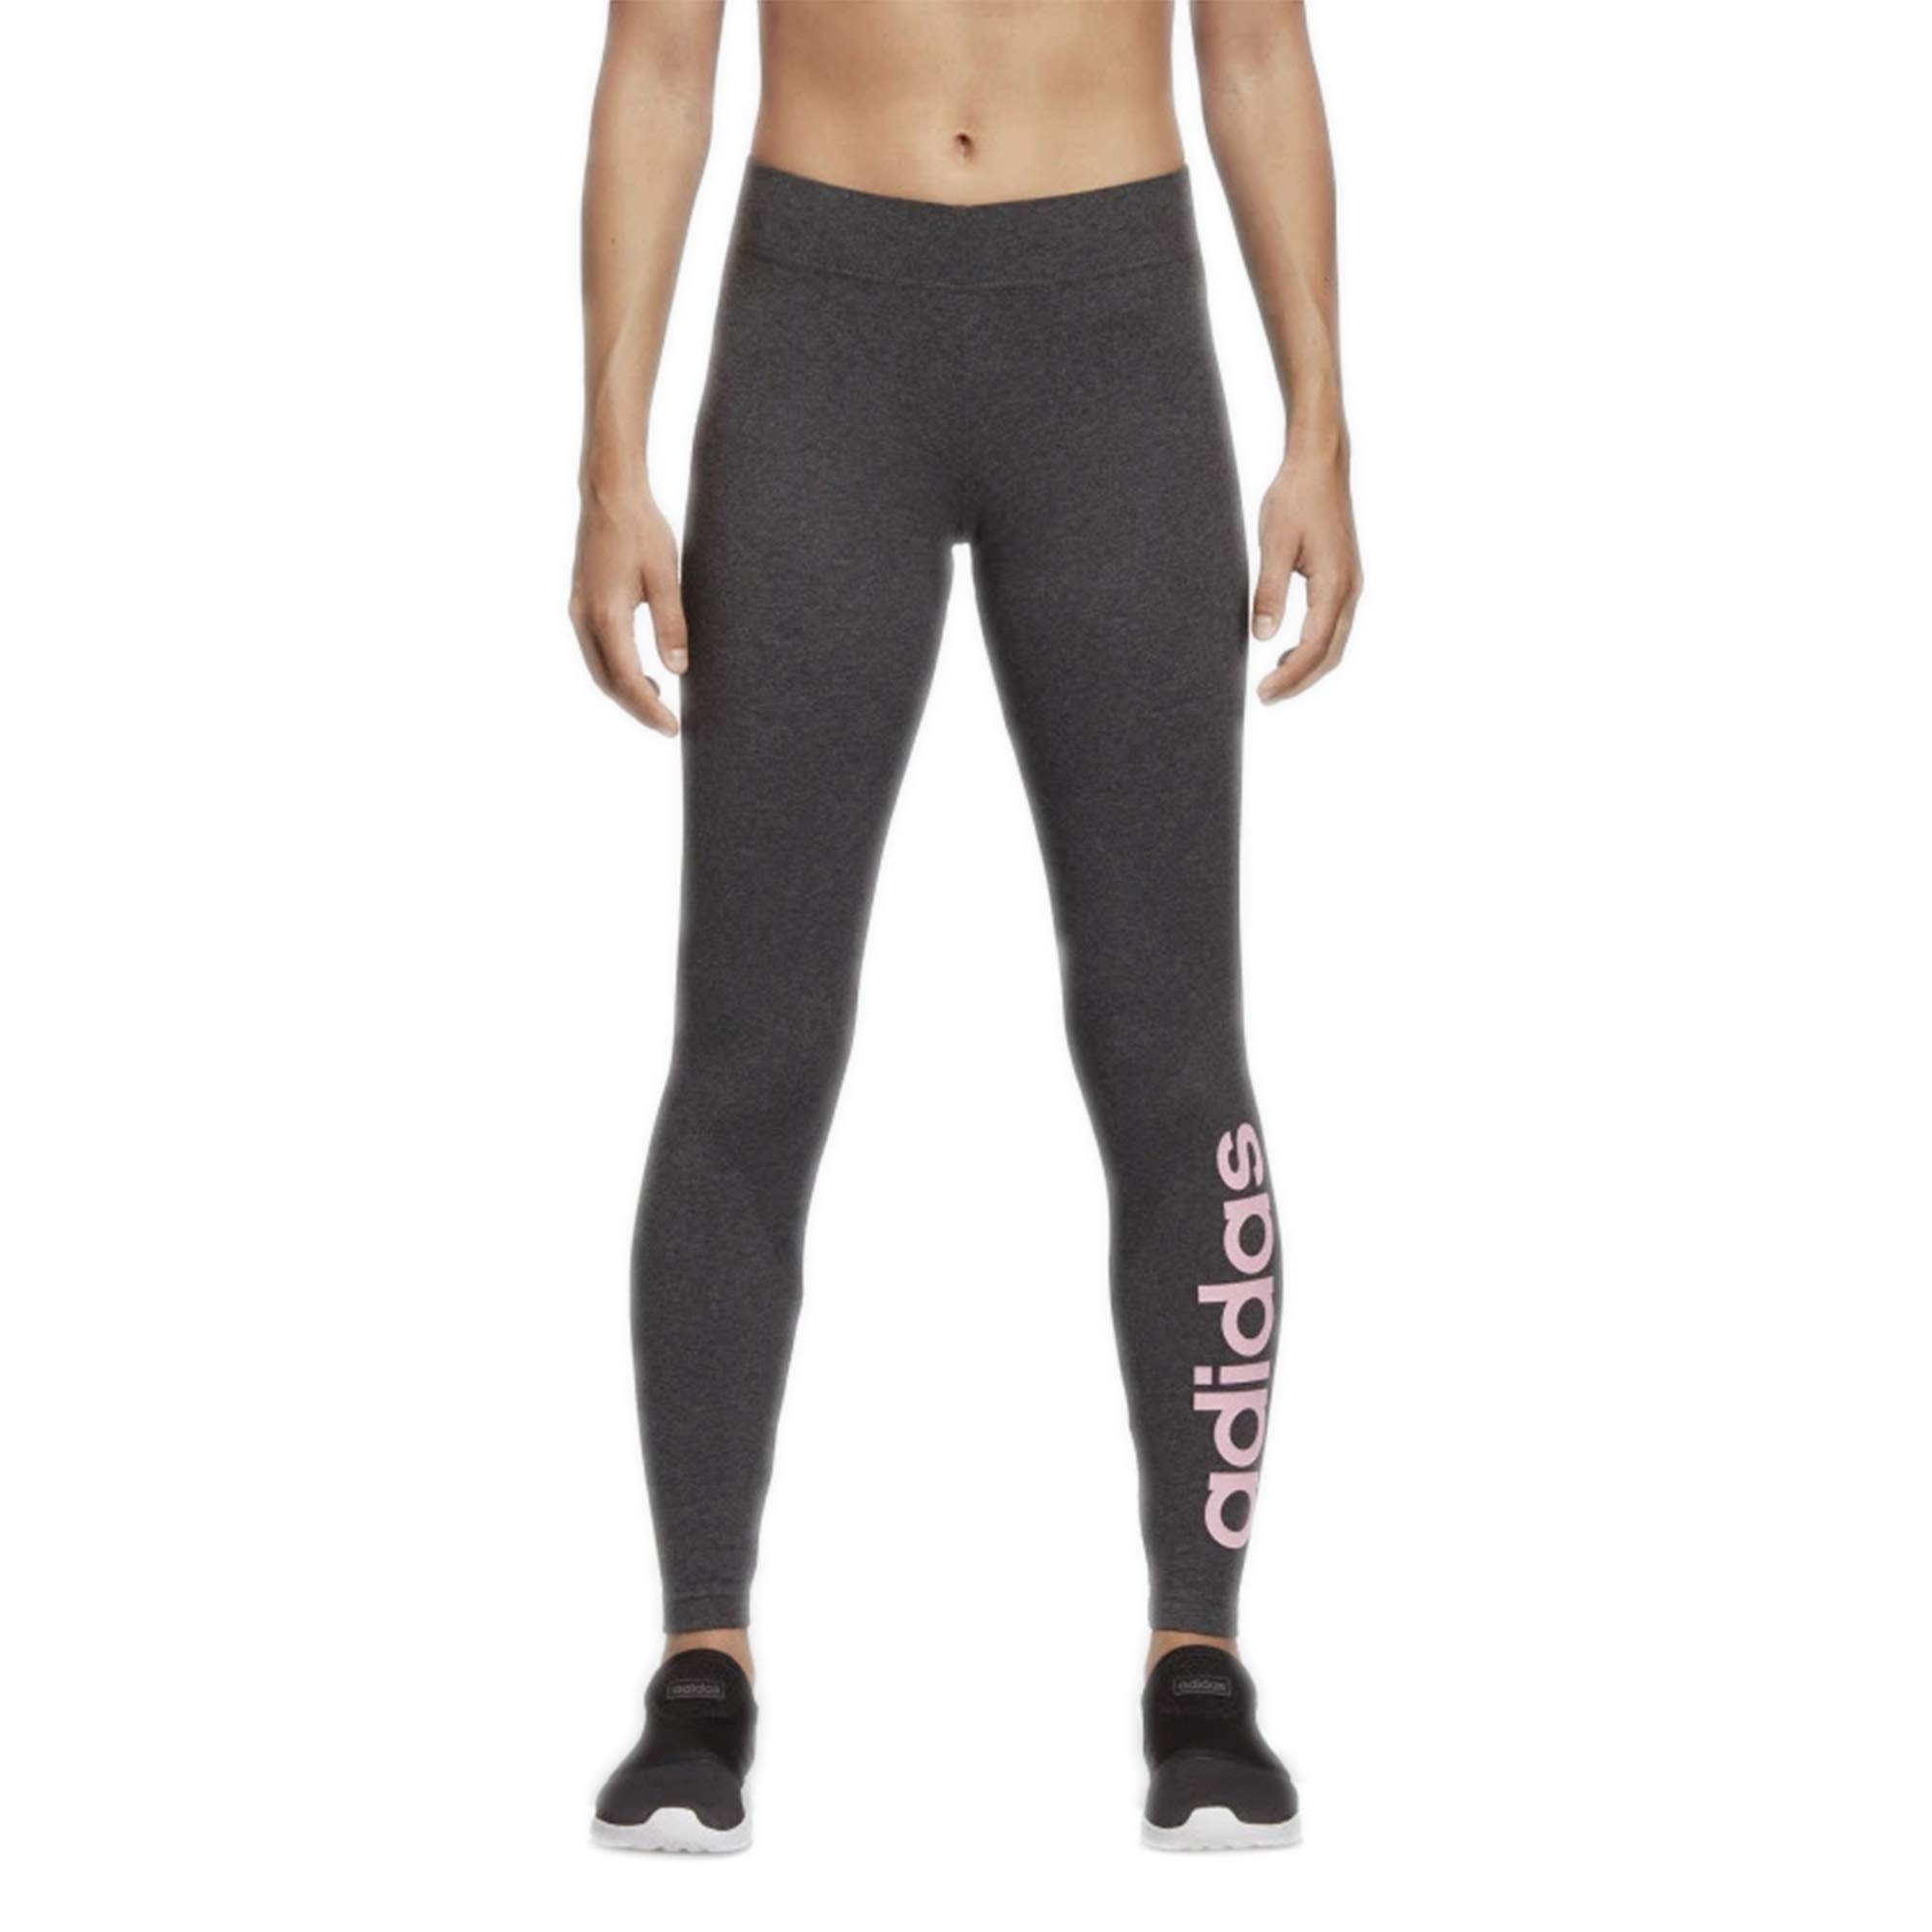 adidas Women's Essentials Linear Tights, Dark Grey Heather/True Pink, X-Large by adidas